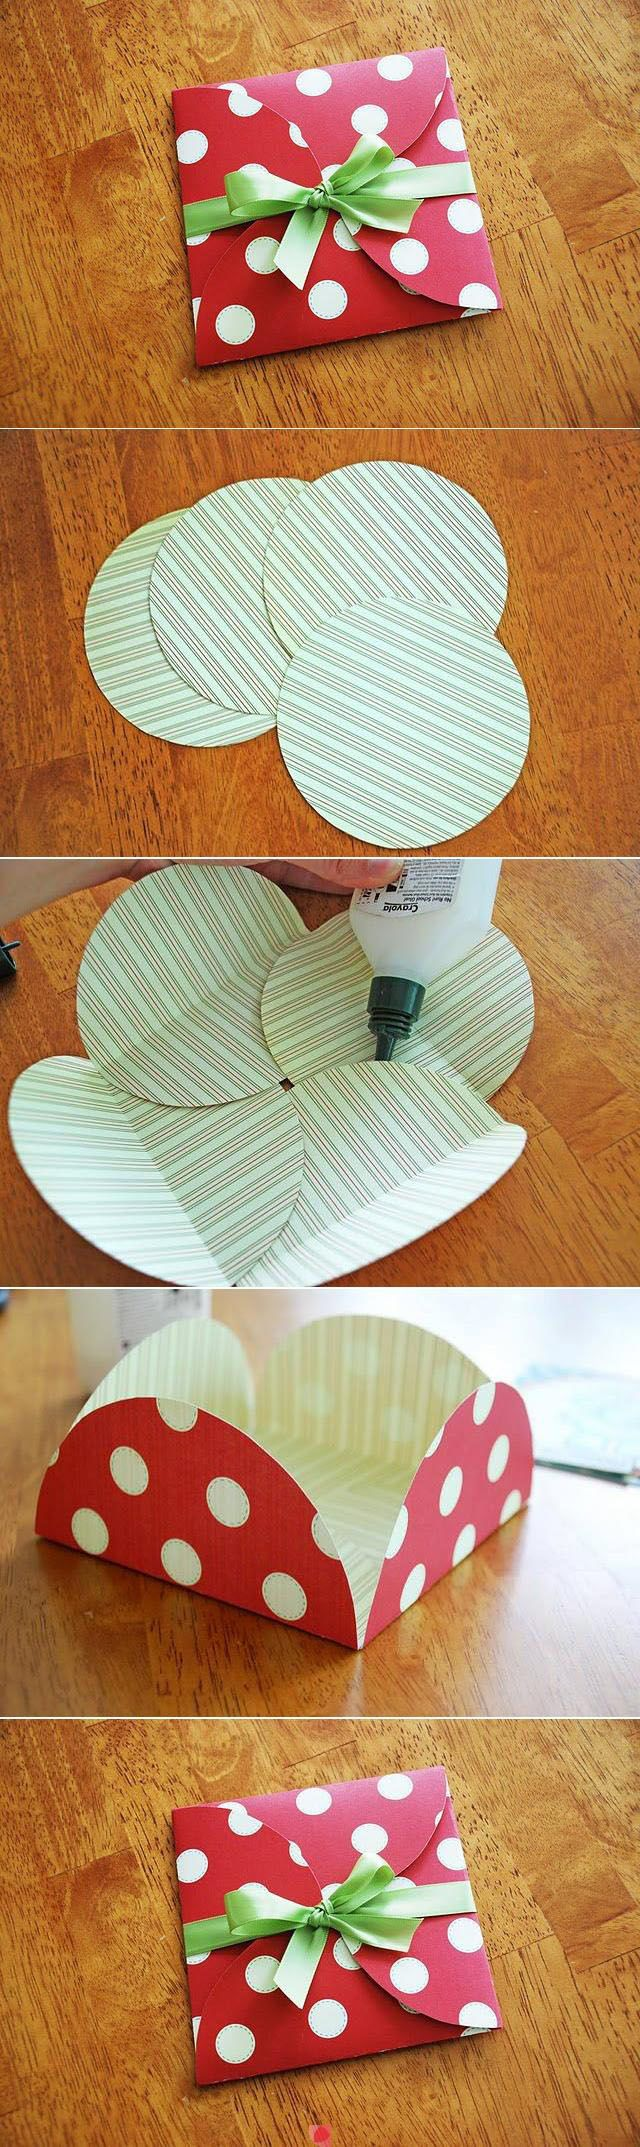 Now THIS is a great idea! So cute and SO easy! What a great way to wrap pic CDs for grandparents and relitives. :)                                                                                                                                                     More